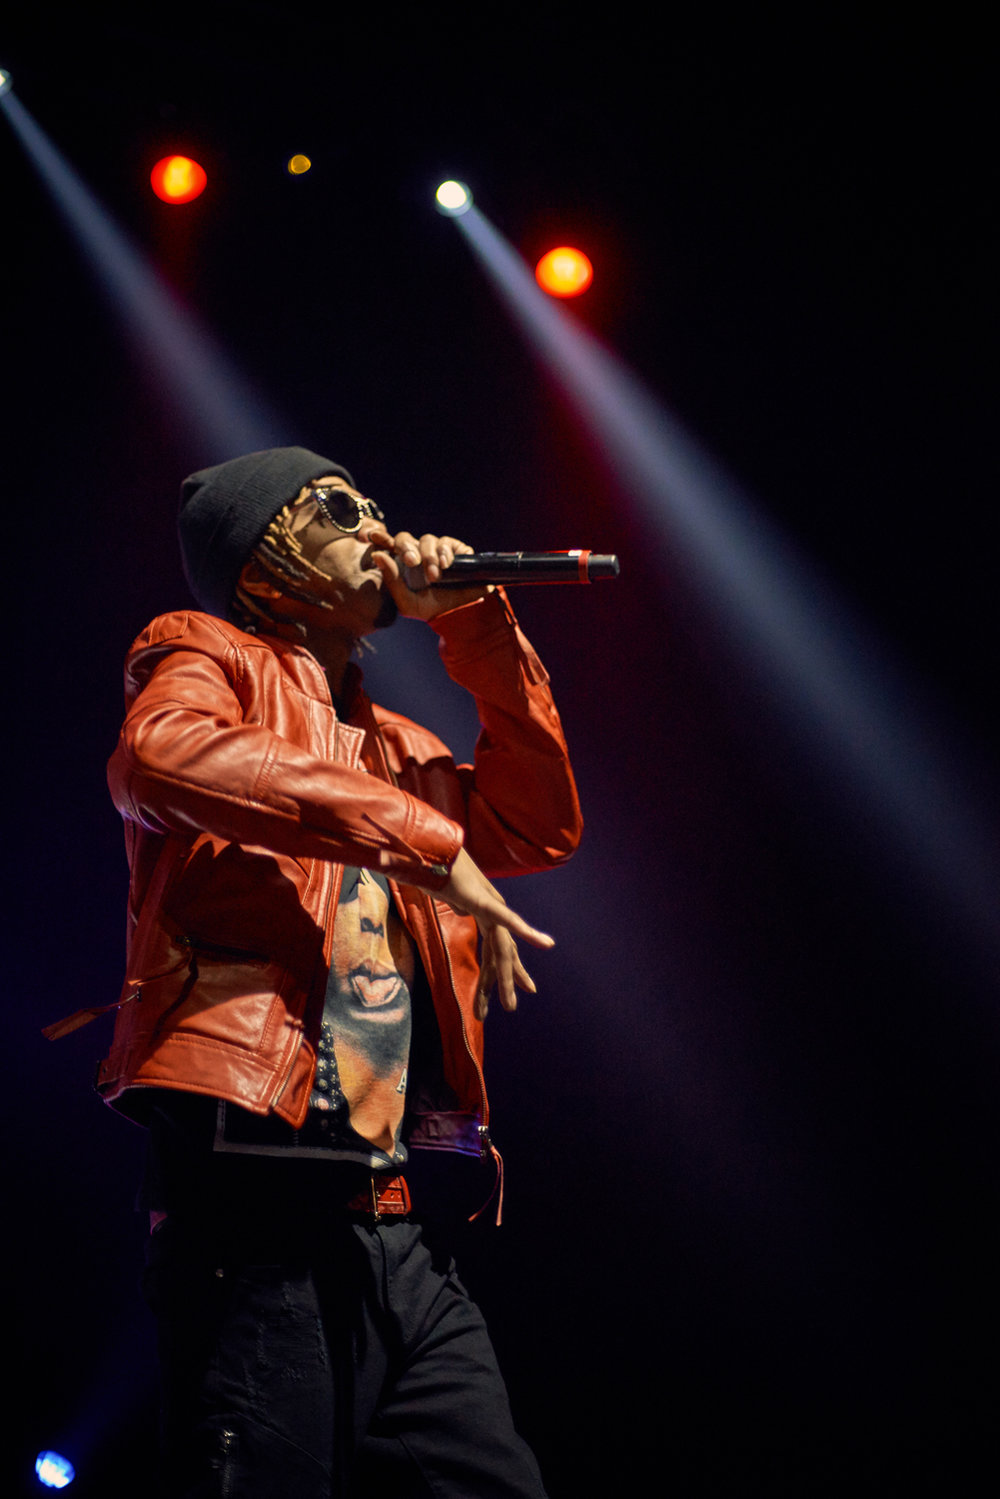 LLL_3096_Ludacris-Live-at-Eventim-Apollo-March-2017.jpg